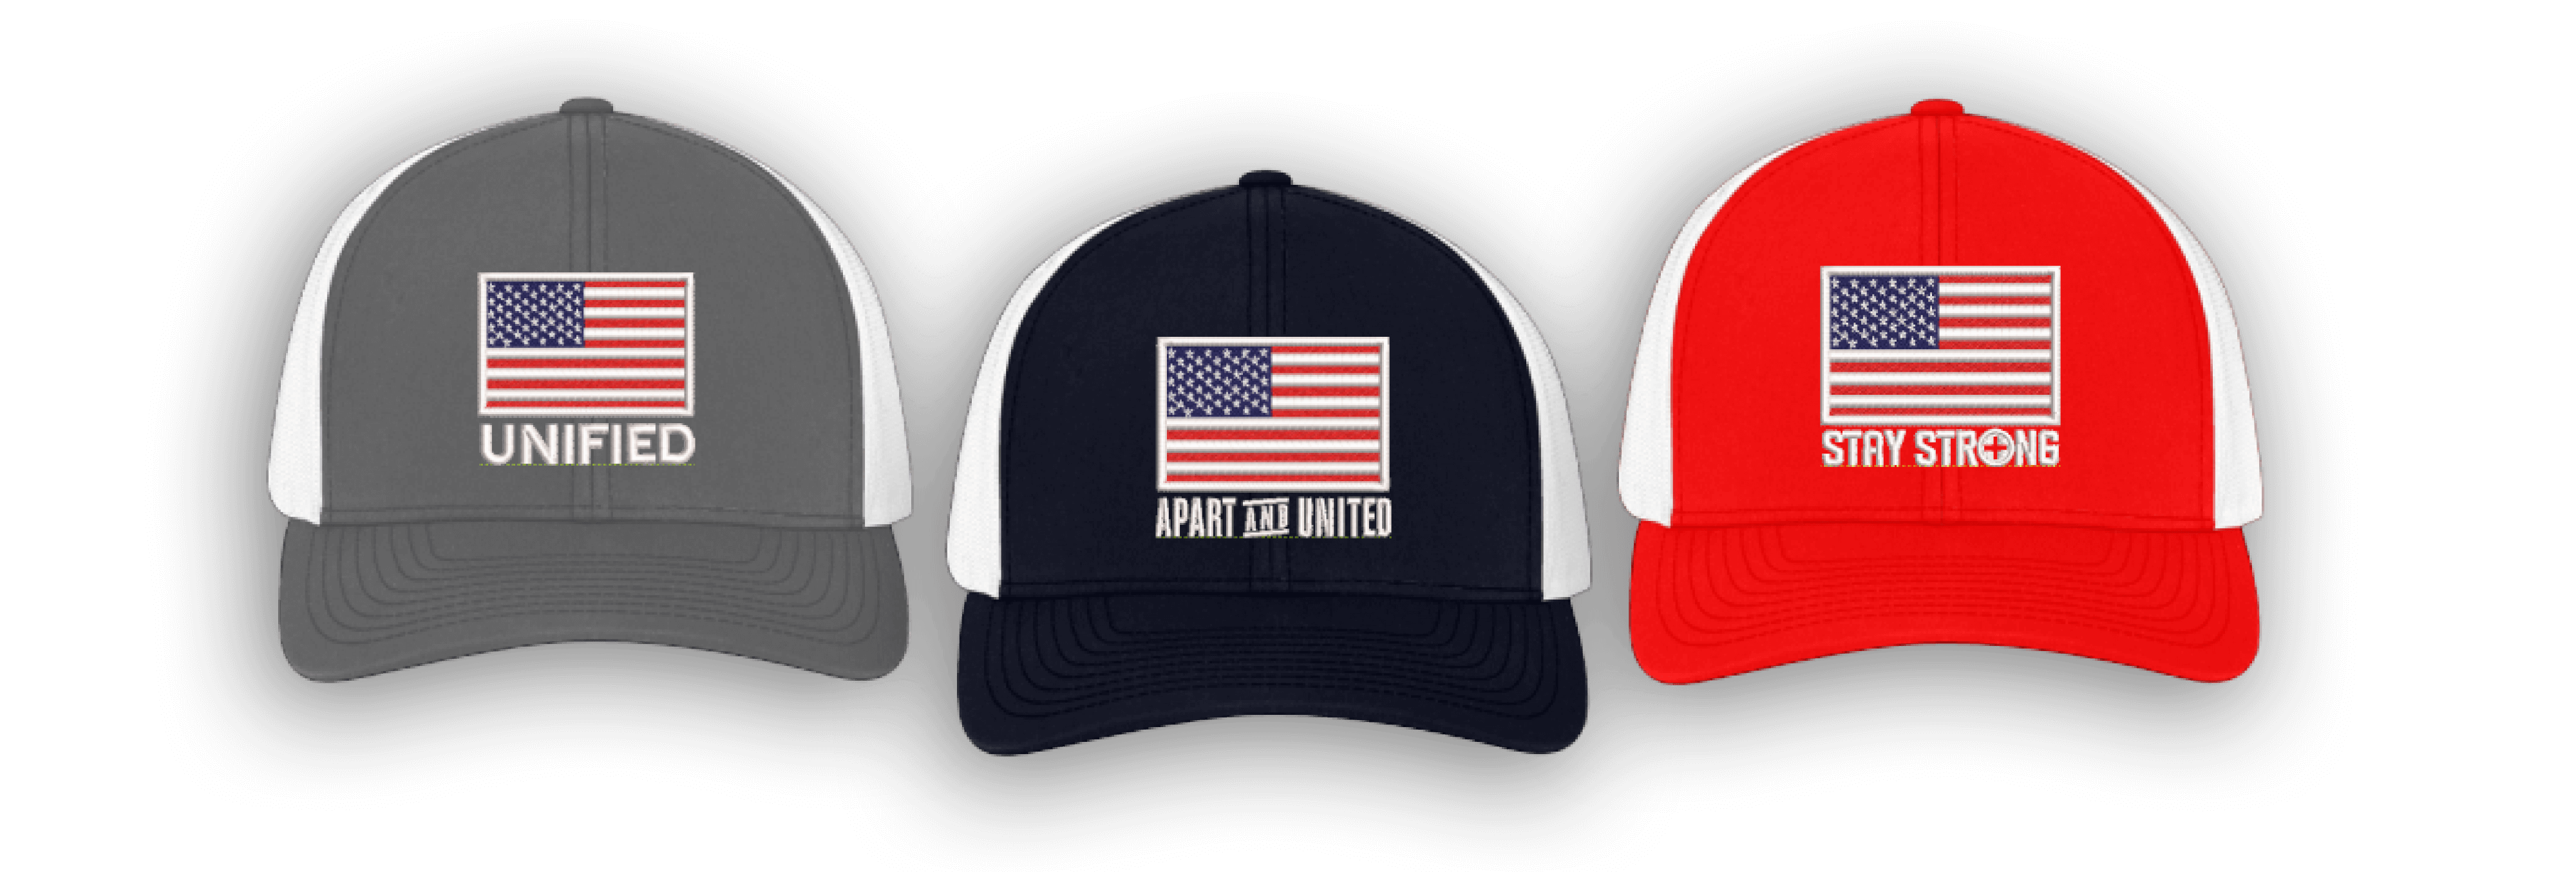 American Red Cross and Pacific Headwear team up for the American Flag Collection hats.